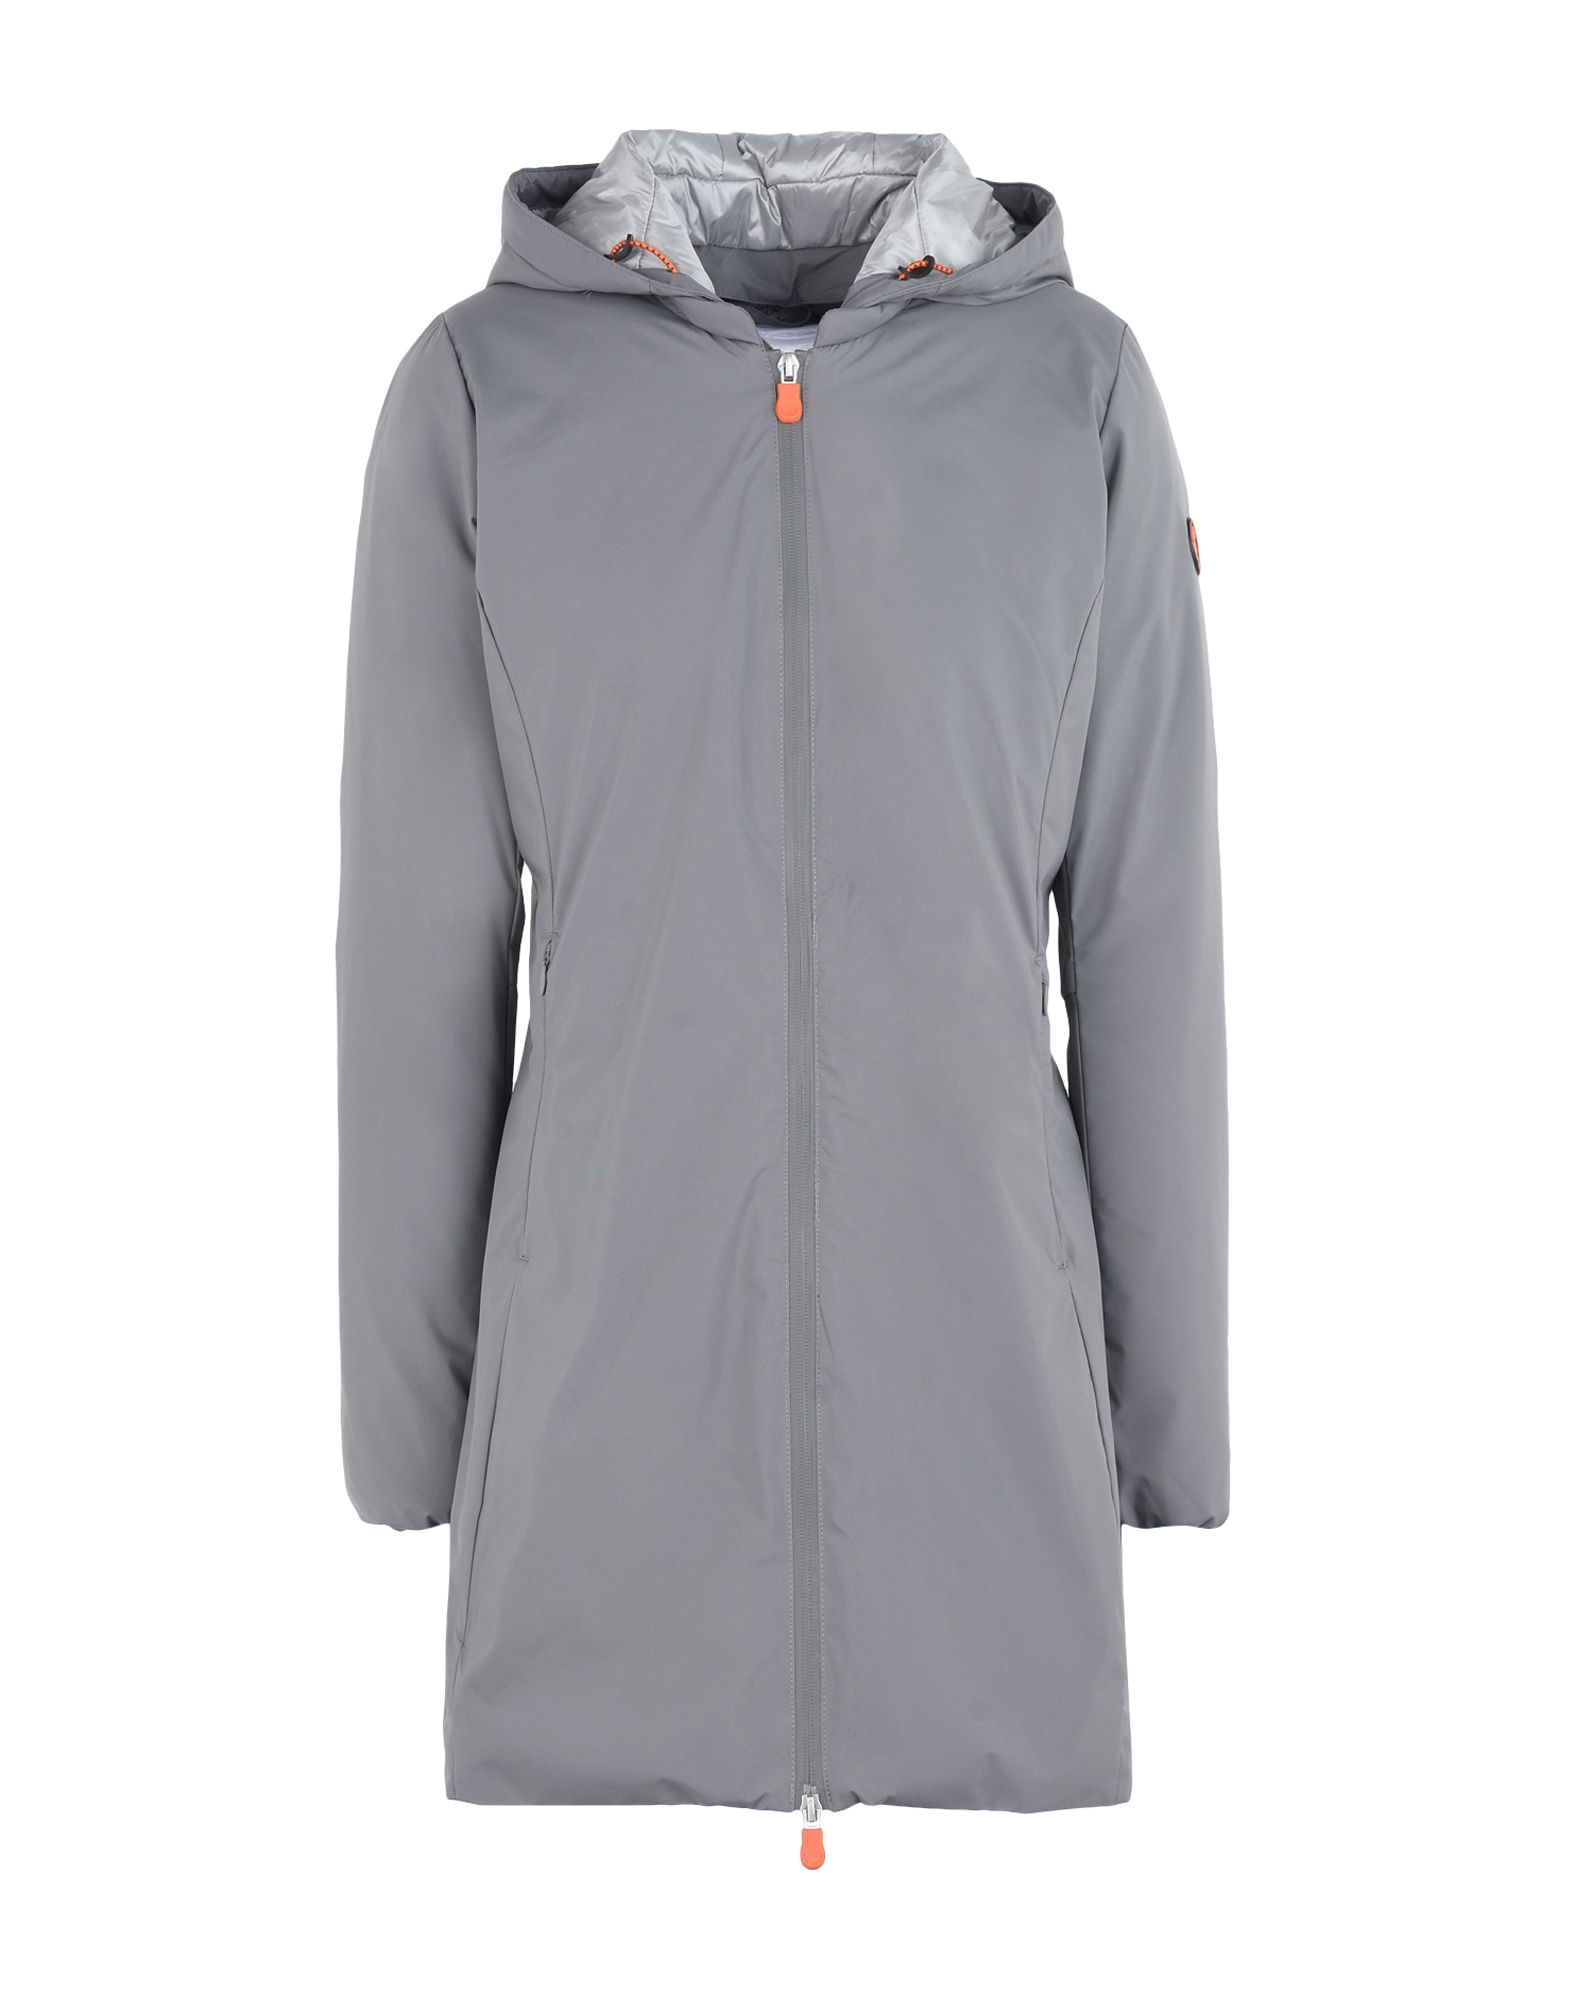 new product c2a88 0c4fa SAVE THE DUCK Jacket - Coats and Jackets | YOOX.COM